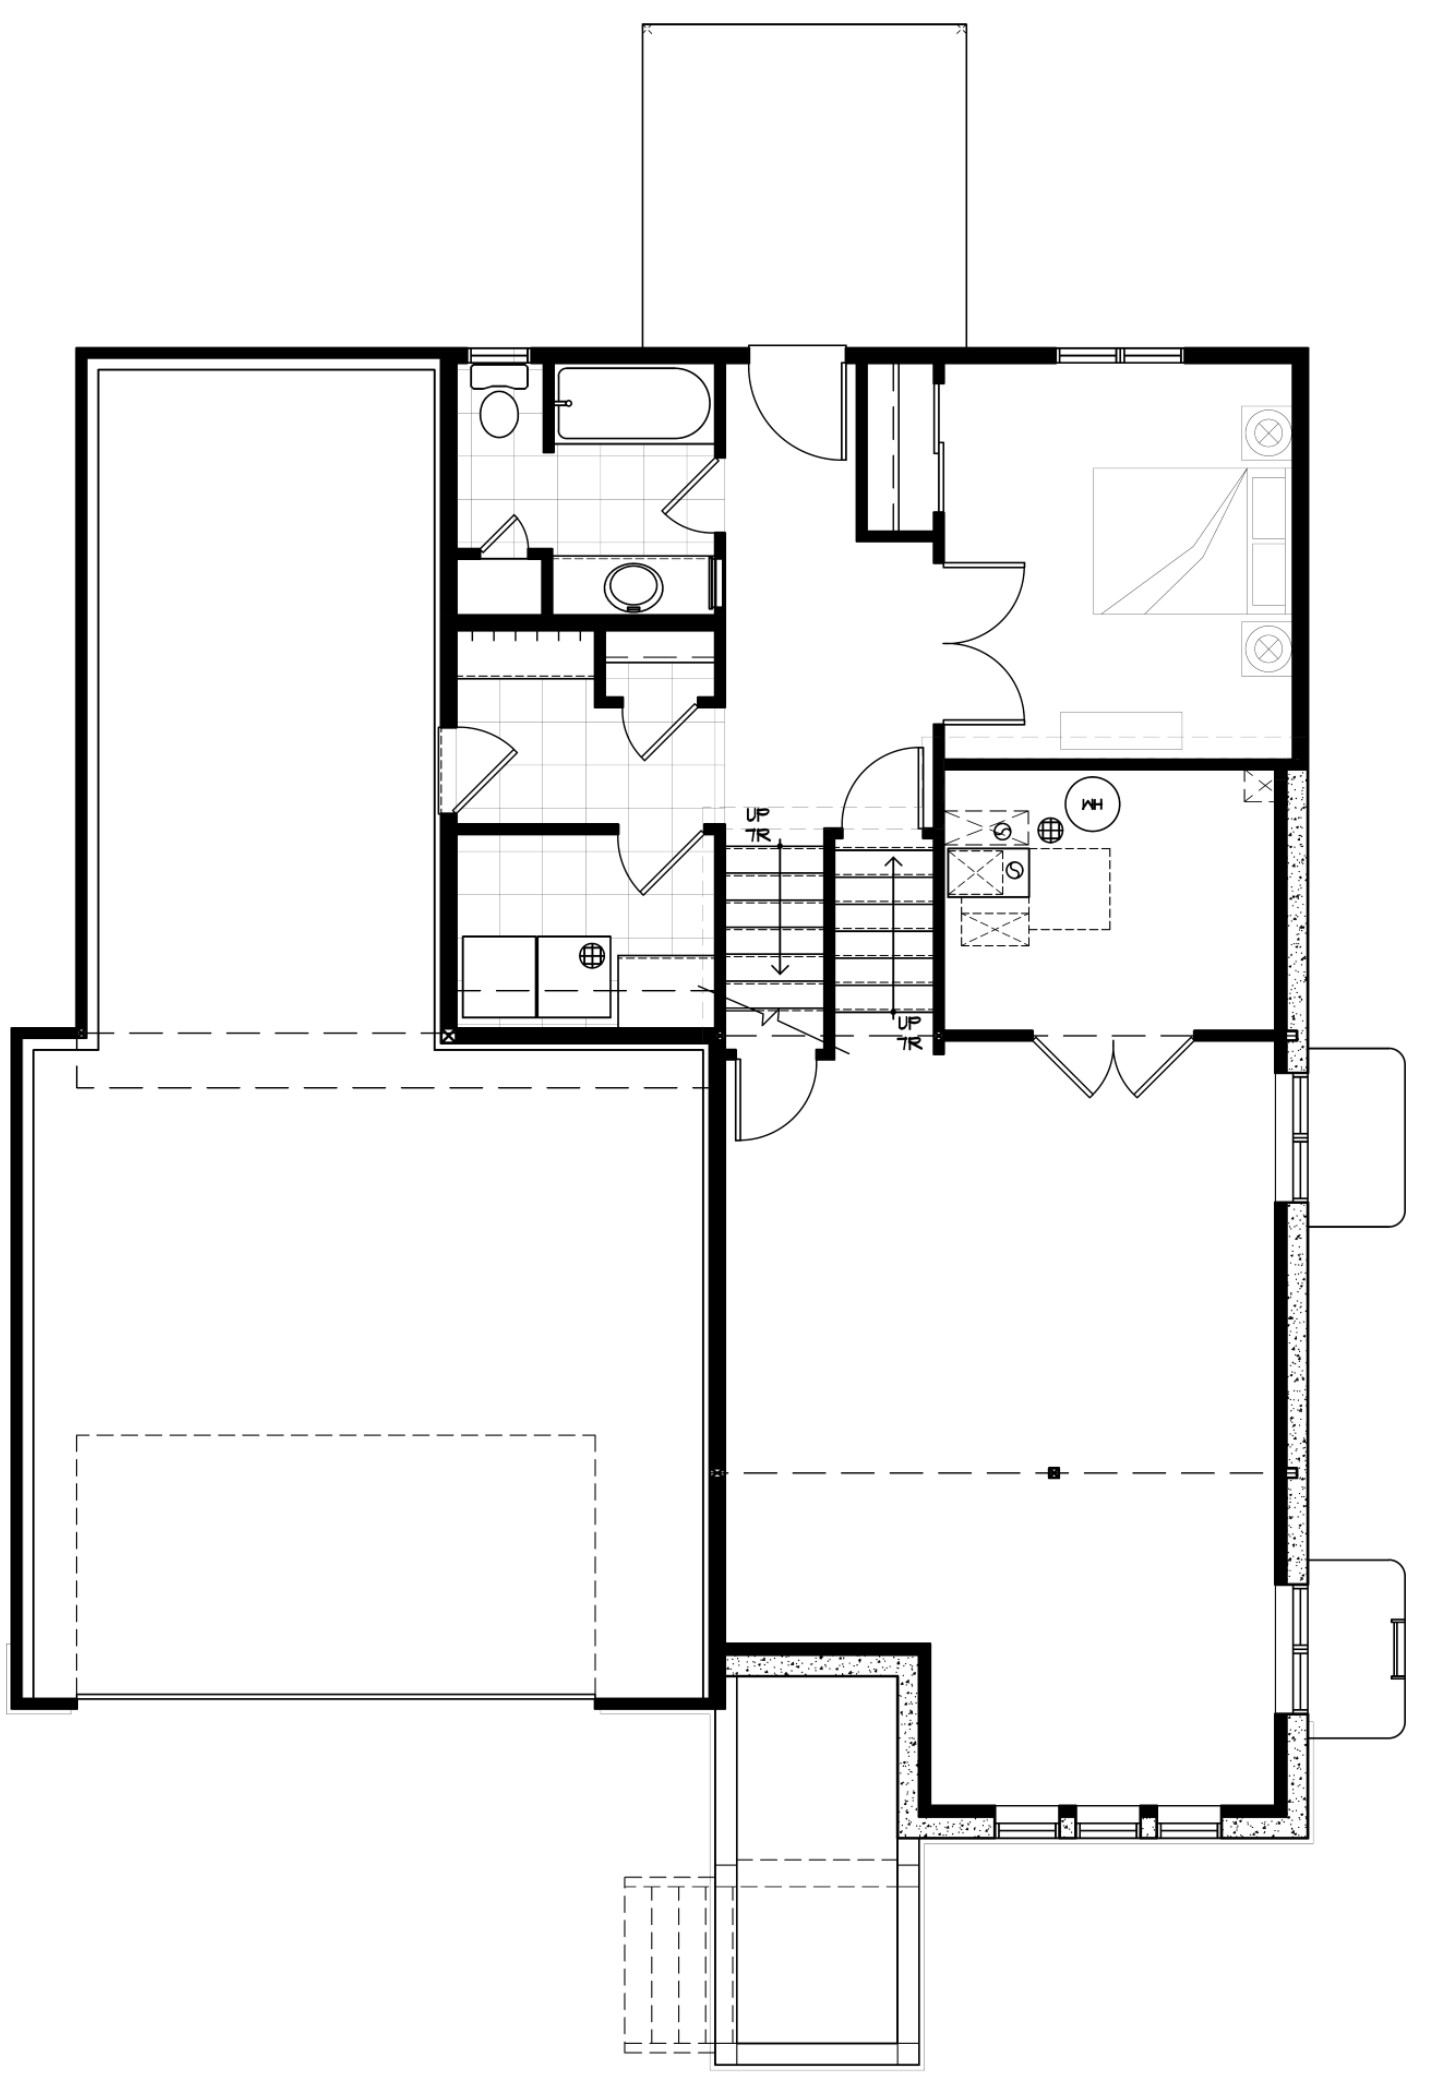 03-keystone-ft_20collins-lower_20level_20floor_20plan-new_20home